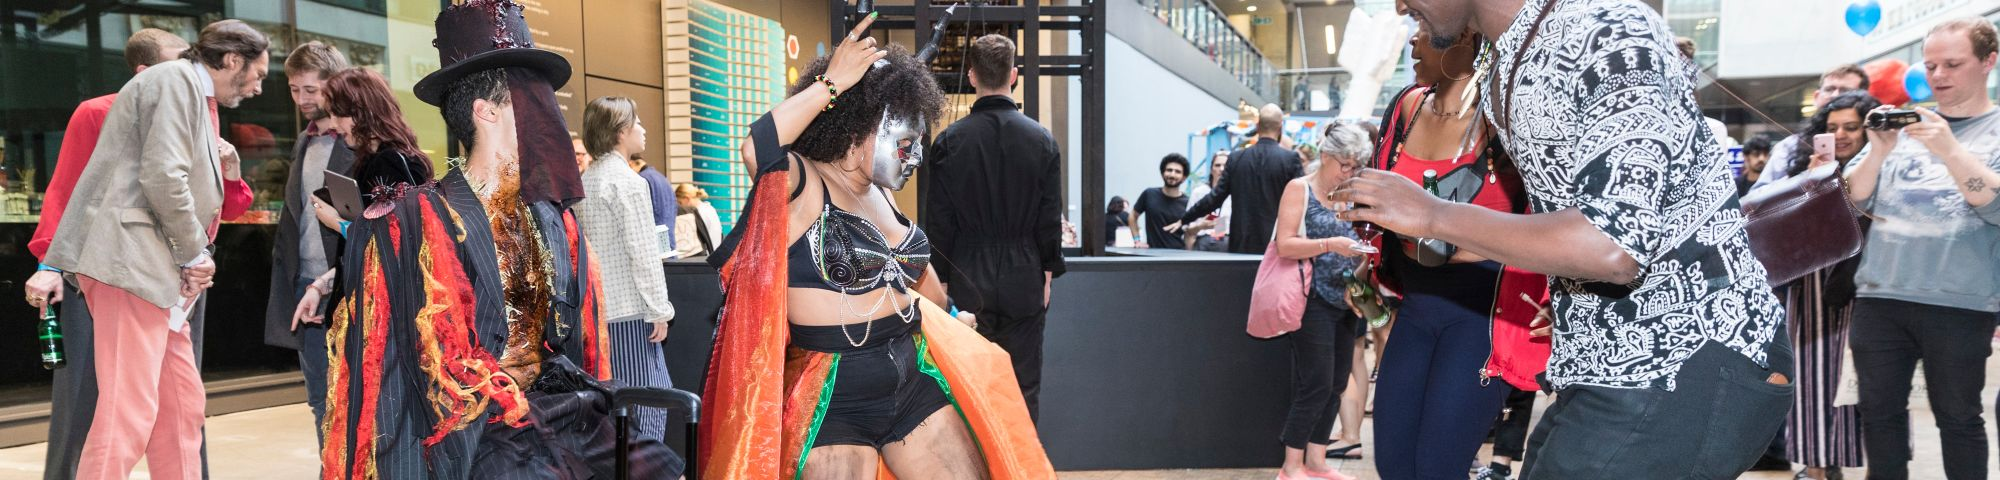 People dancing wearing carnival inspired clothing.